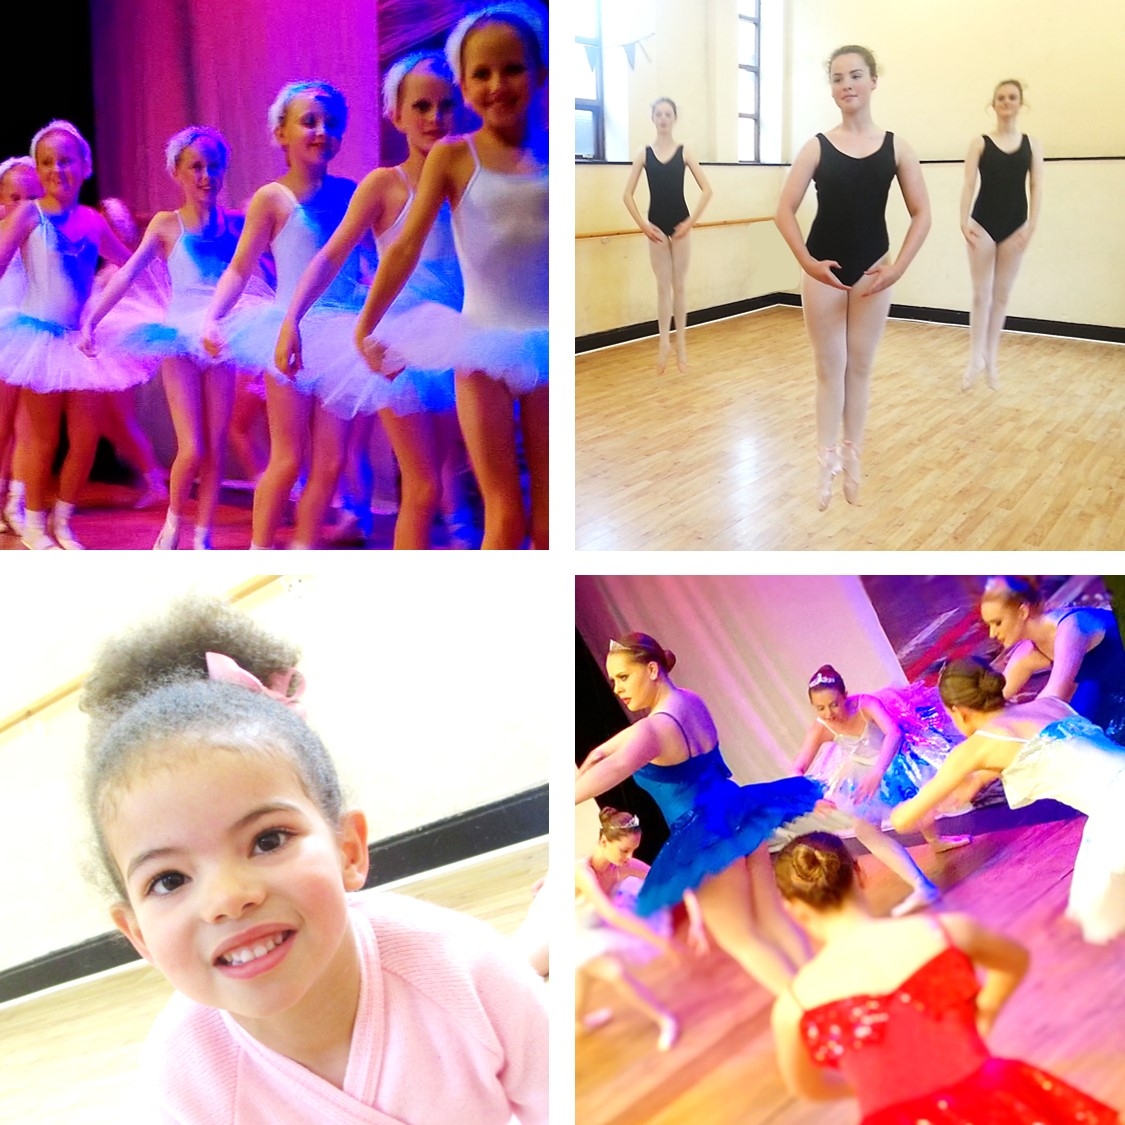 Classical ballet classes for children through to adults at SK Dance Studio, Appley Bridge, Wigan